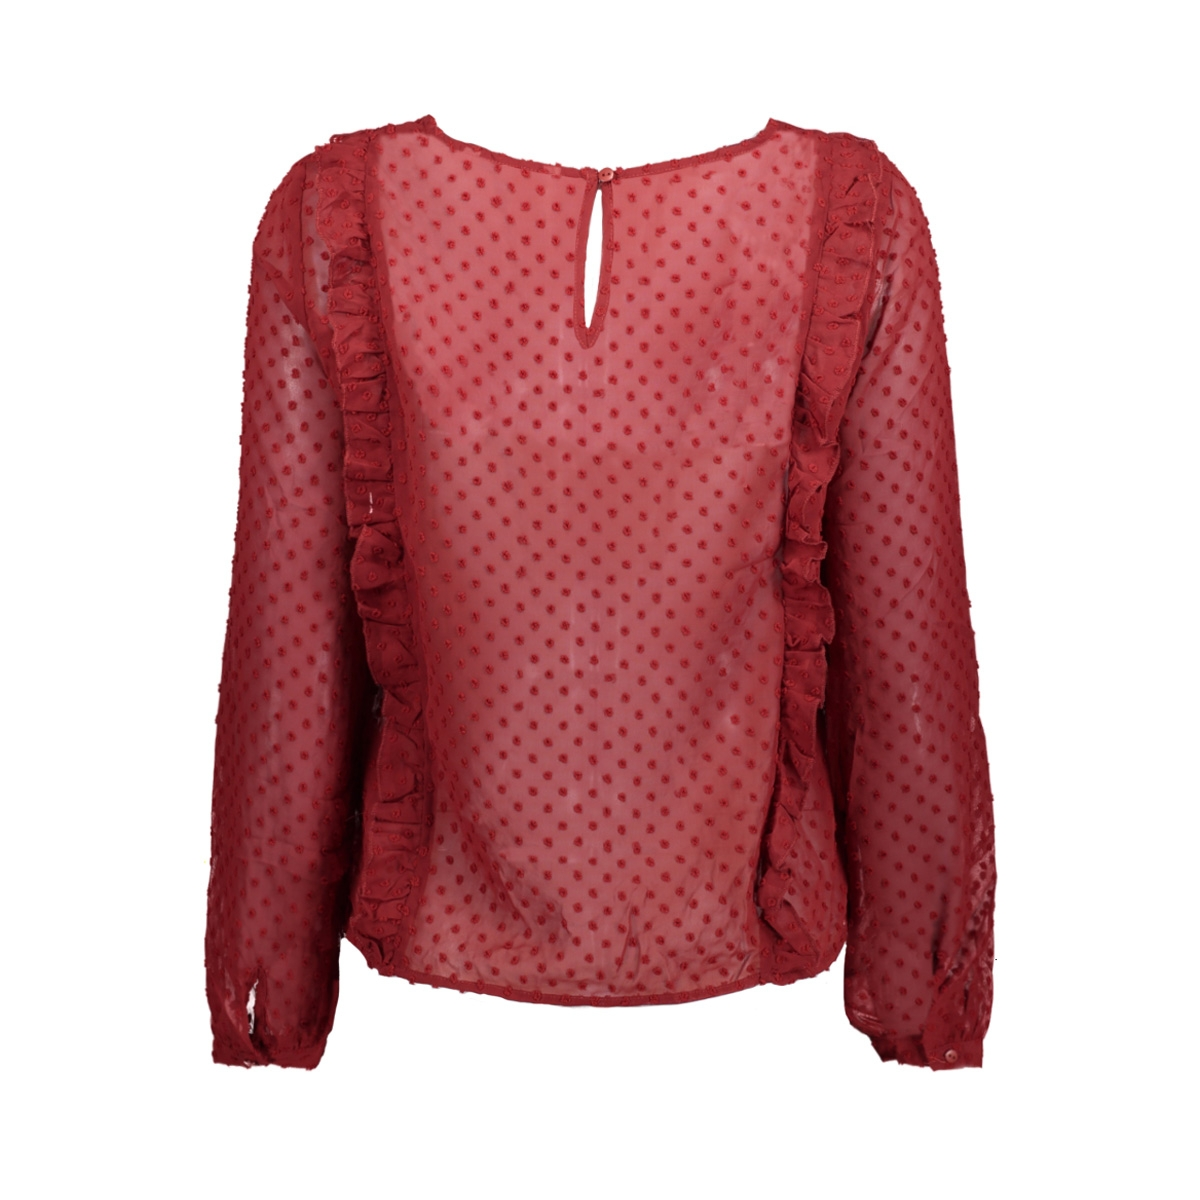 onlsusanne l/s frill top wvn 15144154 only blouse sun-dried tomato